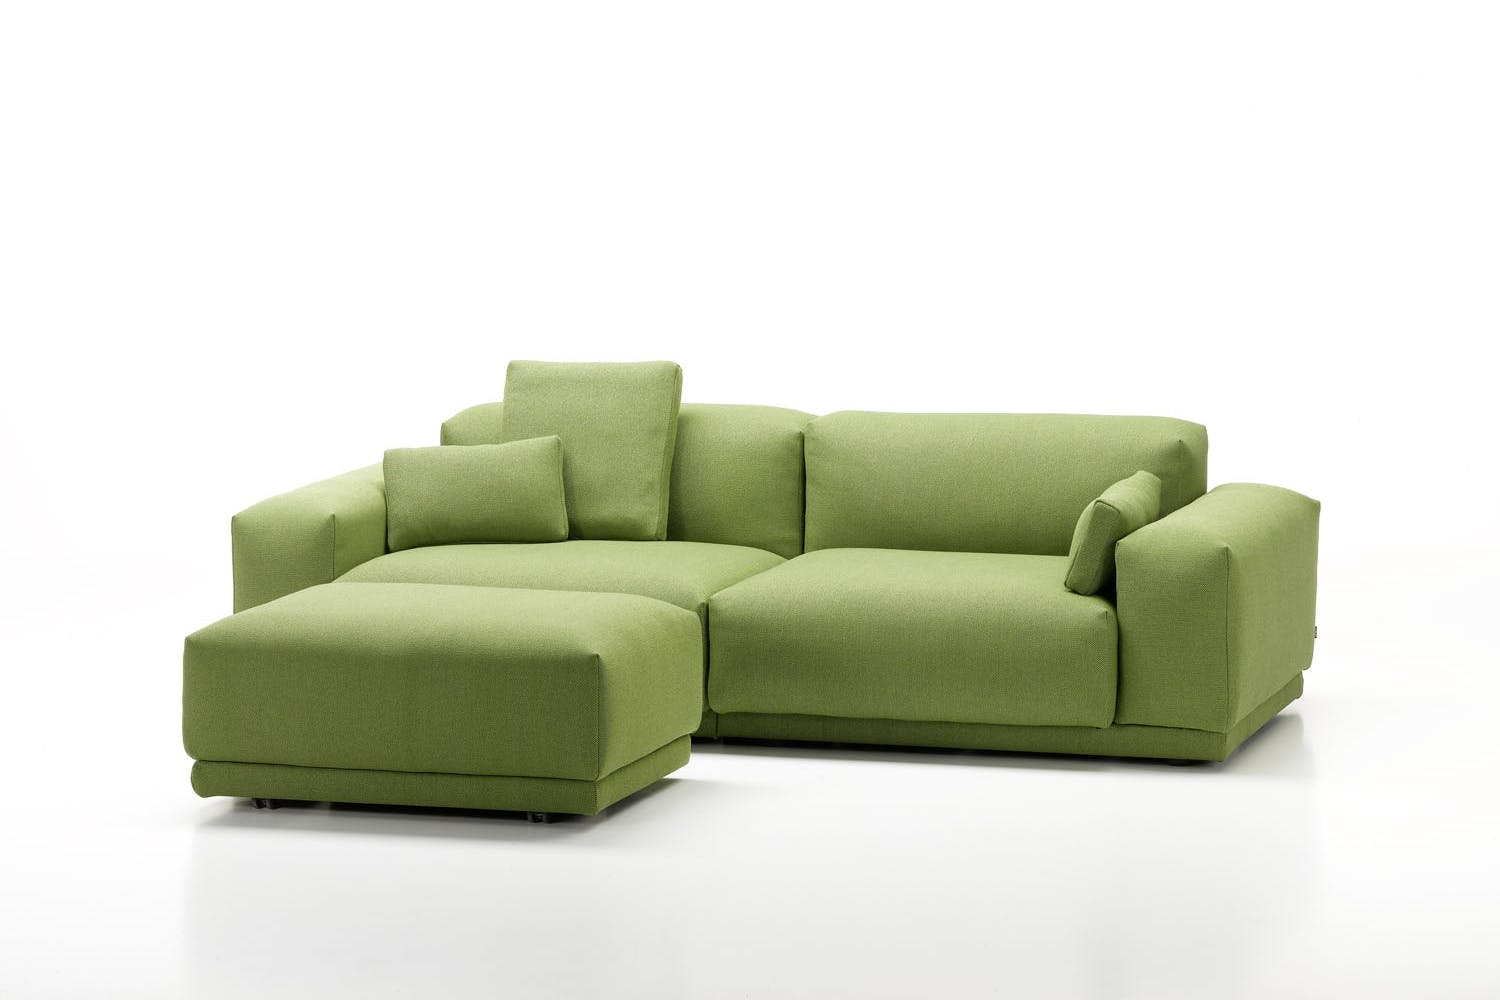 Vitra jasper morrison place sofa refil sofa for Places to get couches